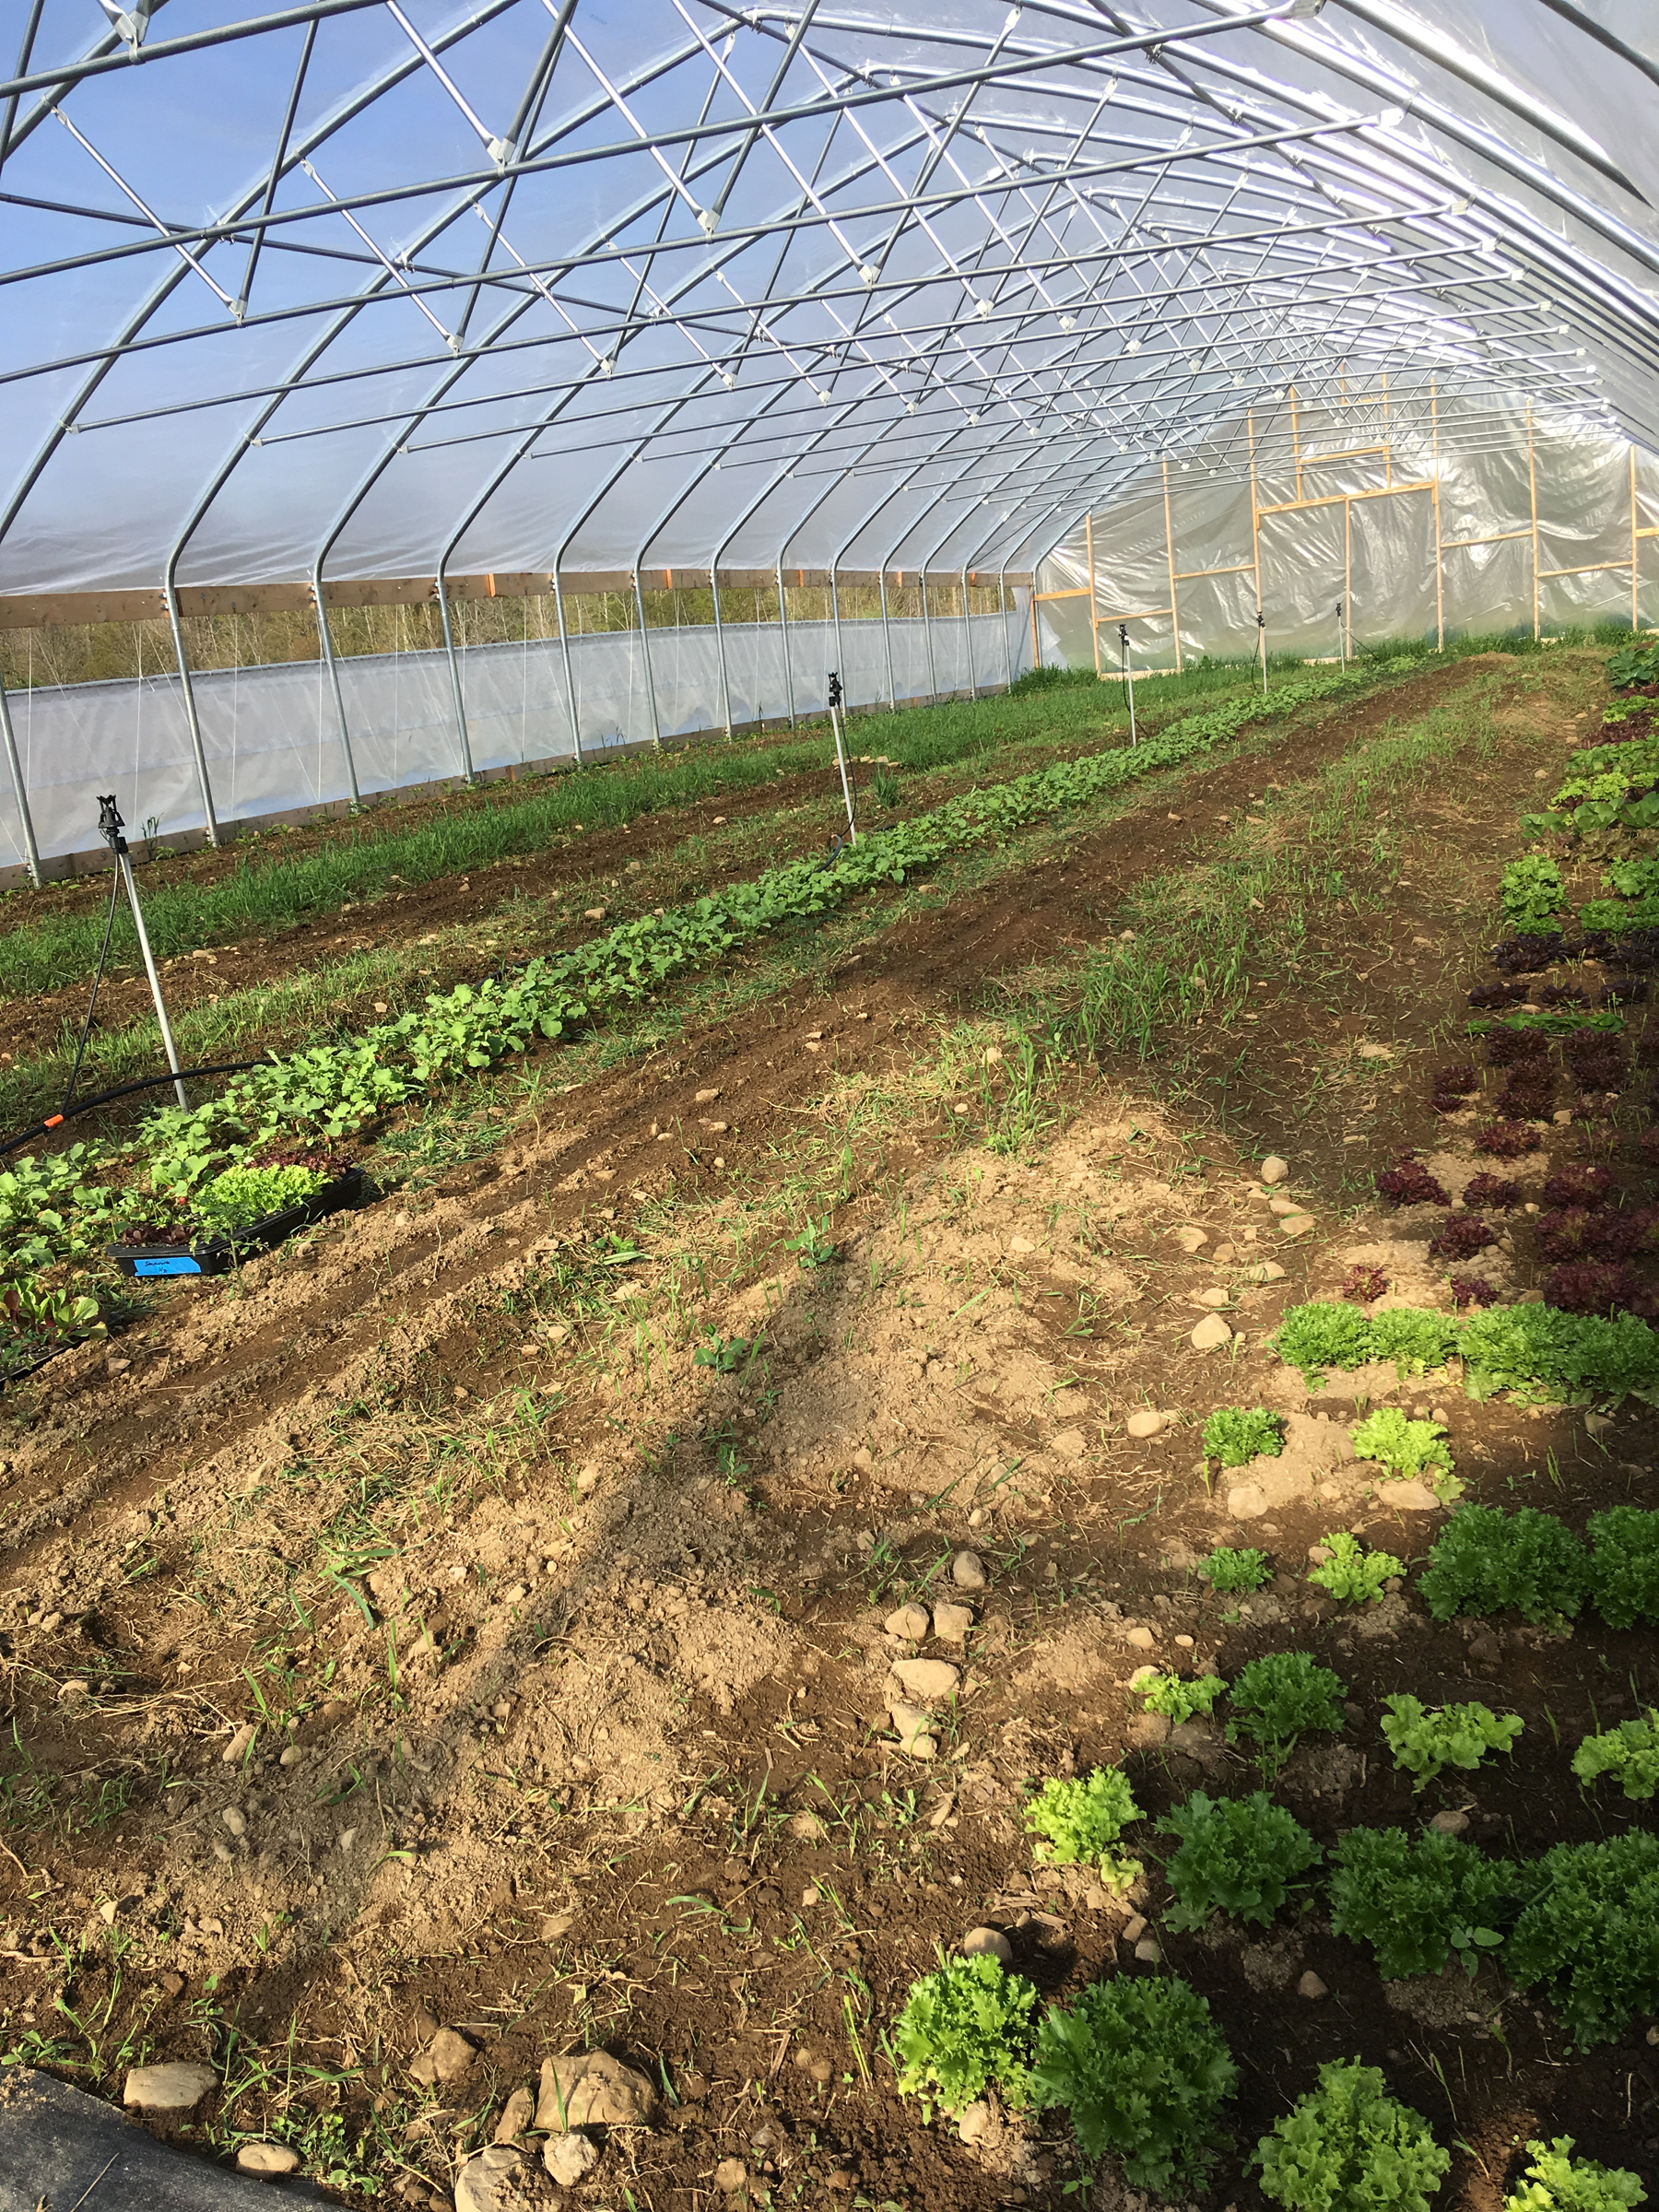 Here's what the Big Tunnel looks like in early May. On the far right, is head lettuce. Beside the lettuce, are two rows of peas. Our first pea attempt didn't germinate well. We replanted the peas, and this time soaked the seeds in water for a few days. The other rows have tomatoes, beets, carrots, and peppers.